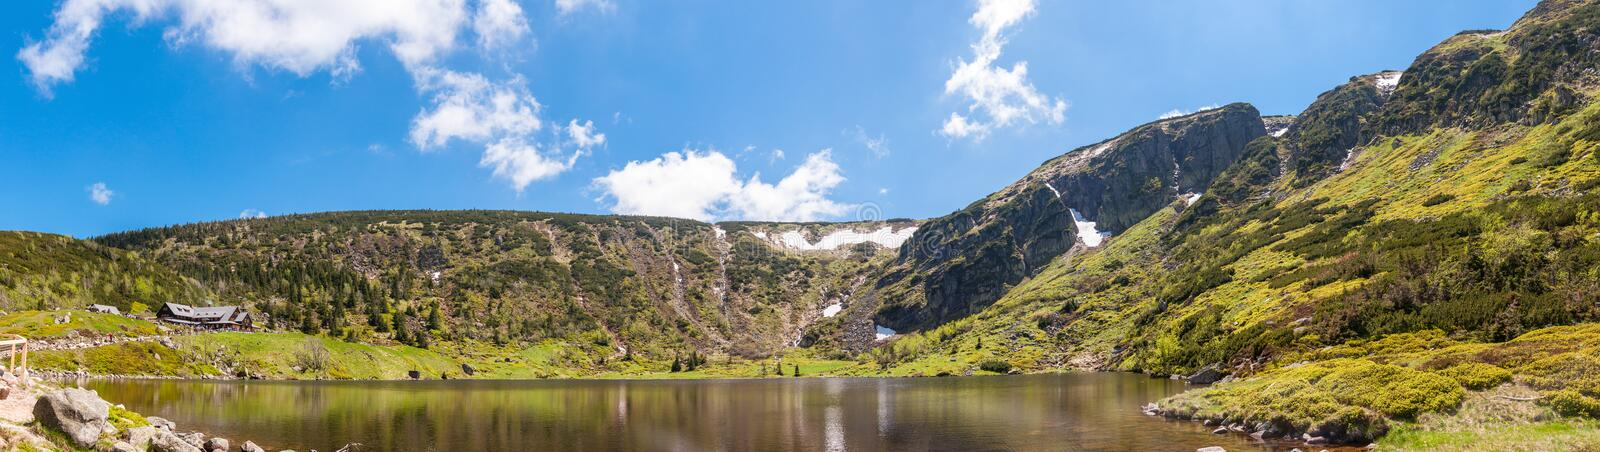 Panoramic view on Cirque of the Small Pond. Cirque of the Small Pond in Krkonosze National Park. Samotnia refuge, one of the oldest mountain refuges in Poland royalty free stock images